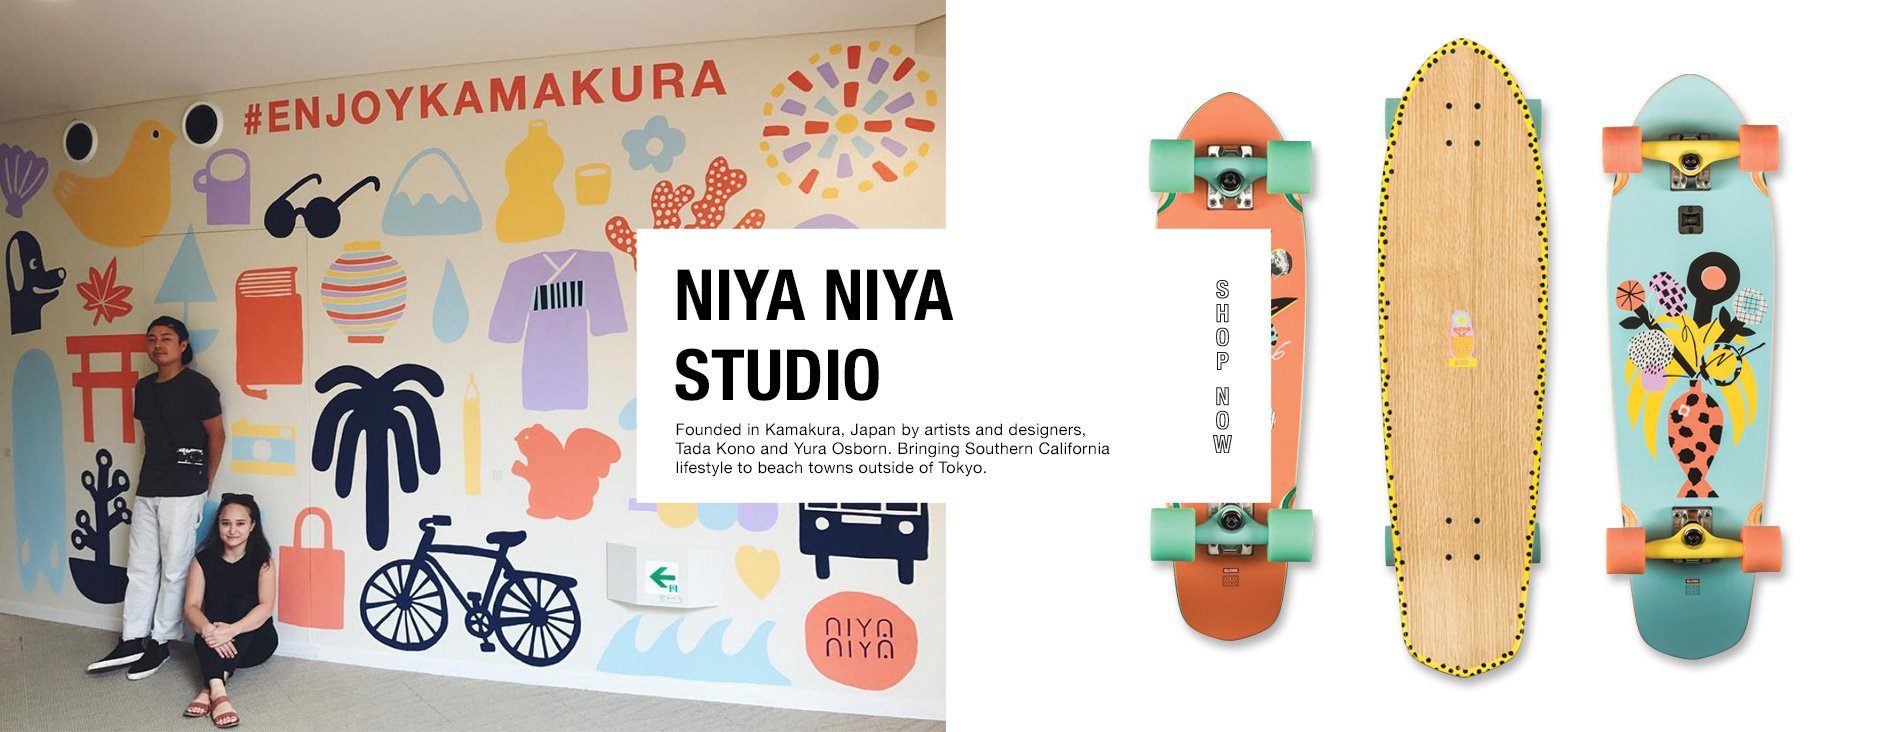 NIY NIY STUDIO GLOBE SKATEBOARDS